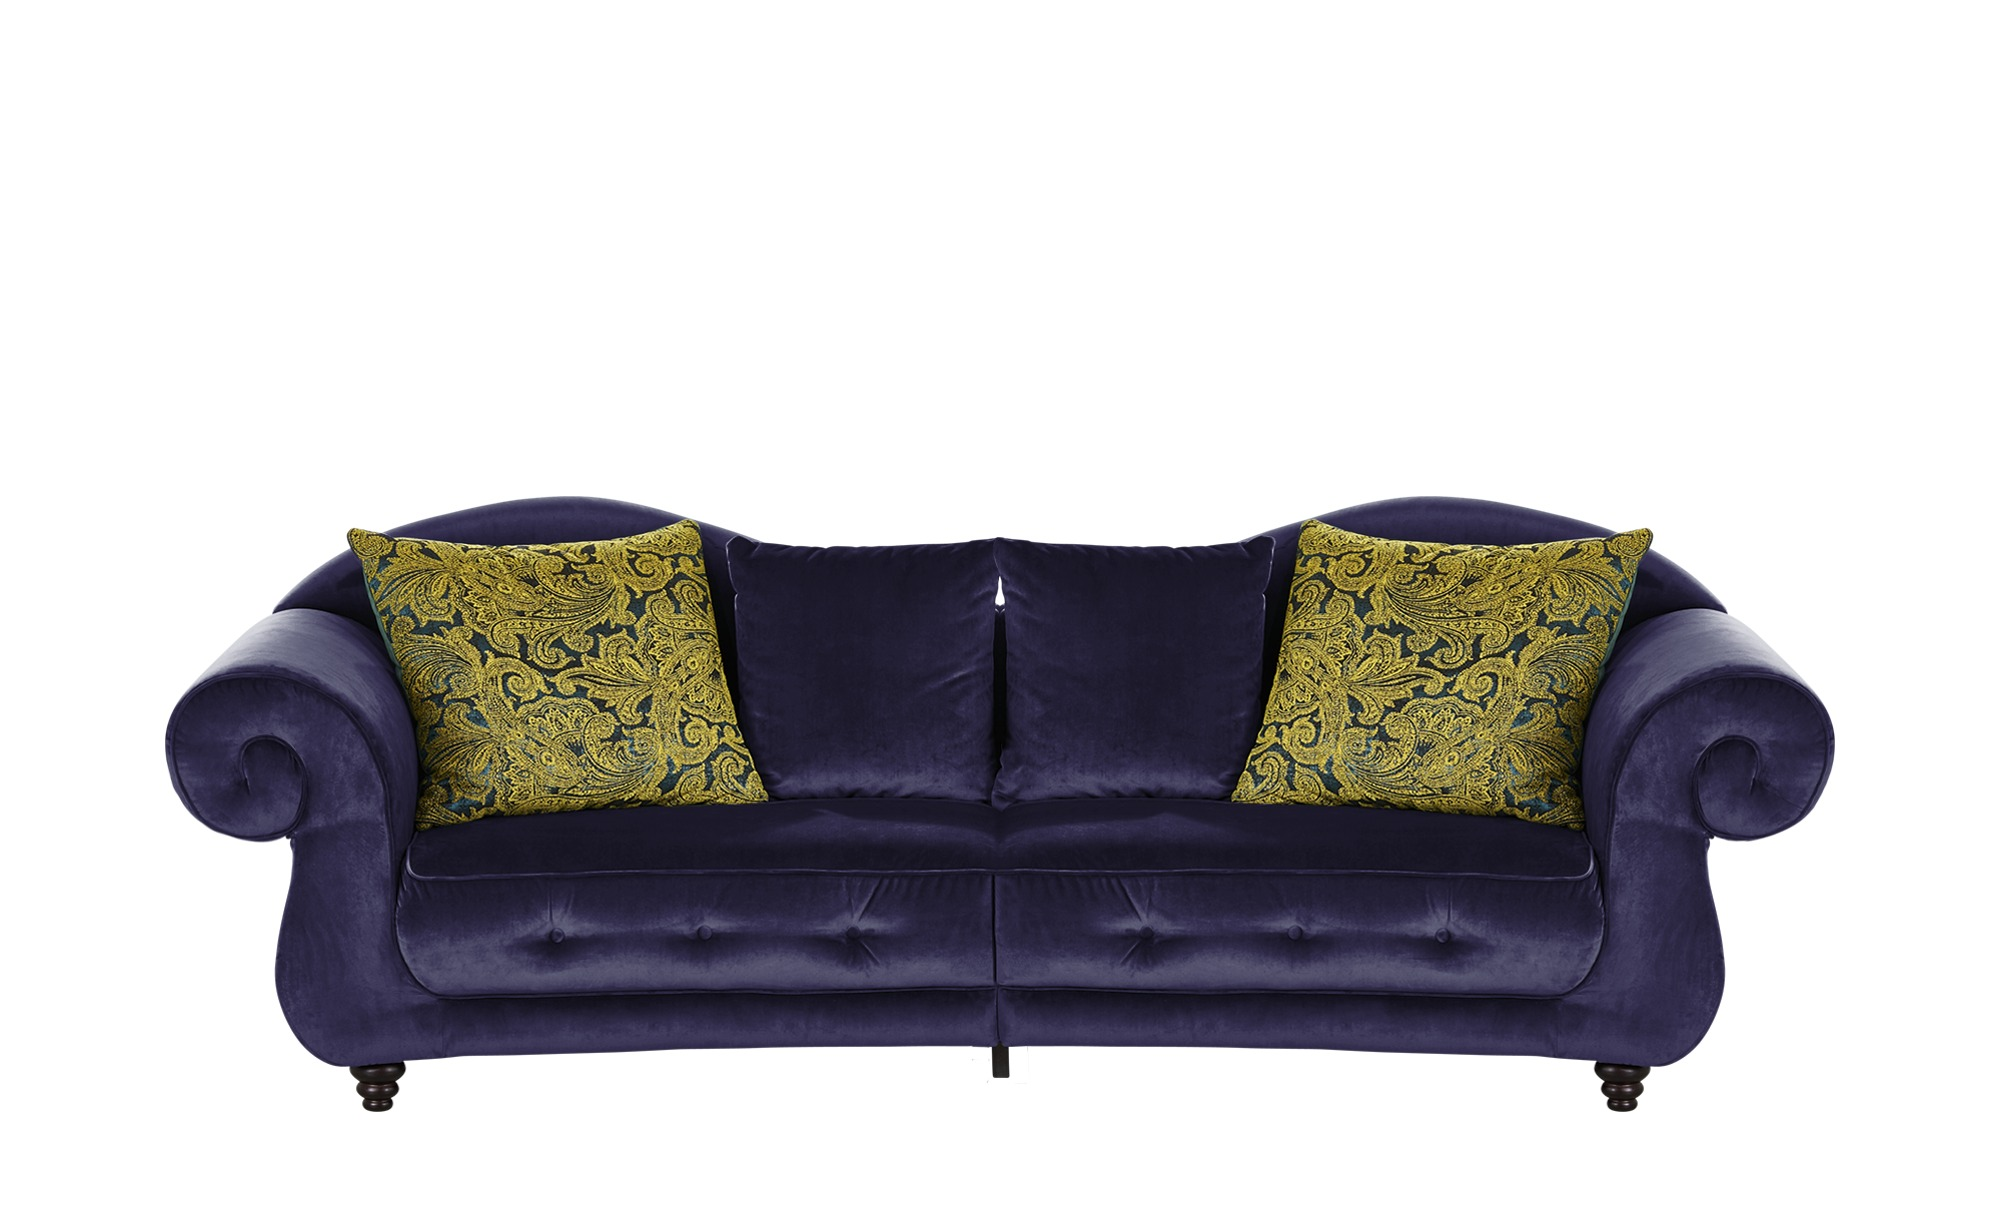 Full Size of Chesterfield Sofa Samt Lila Lilac Throws Lilah Corner Sleeper Raymour And Flanigan Chair Set Living Room Uk 3 Piece Suite Salon Cushions Auf Raten 2 Sitzer Sofa Sofa Lila